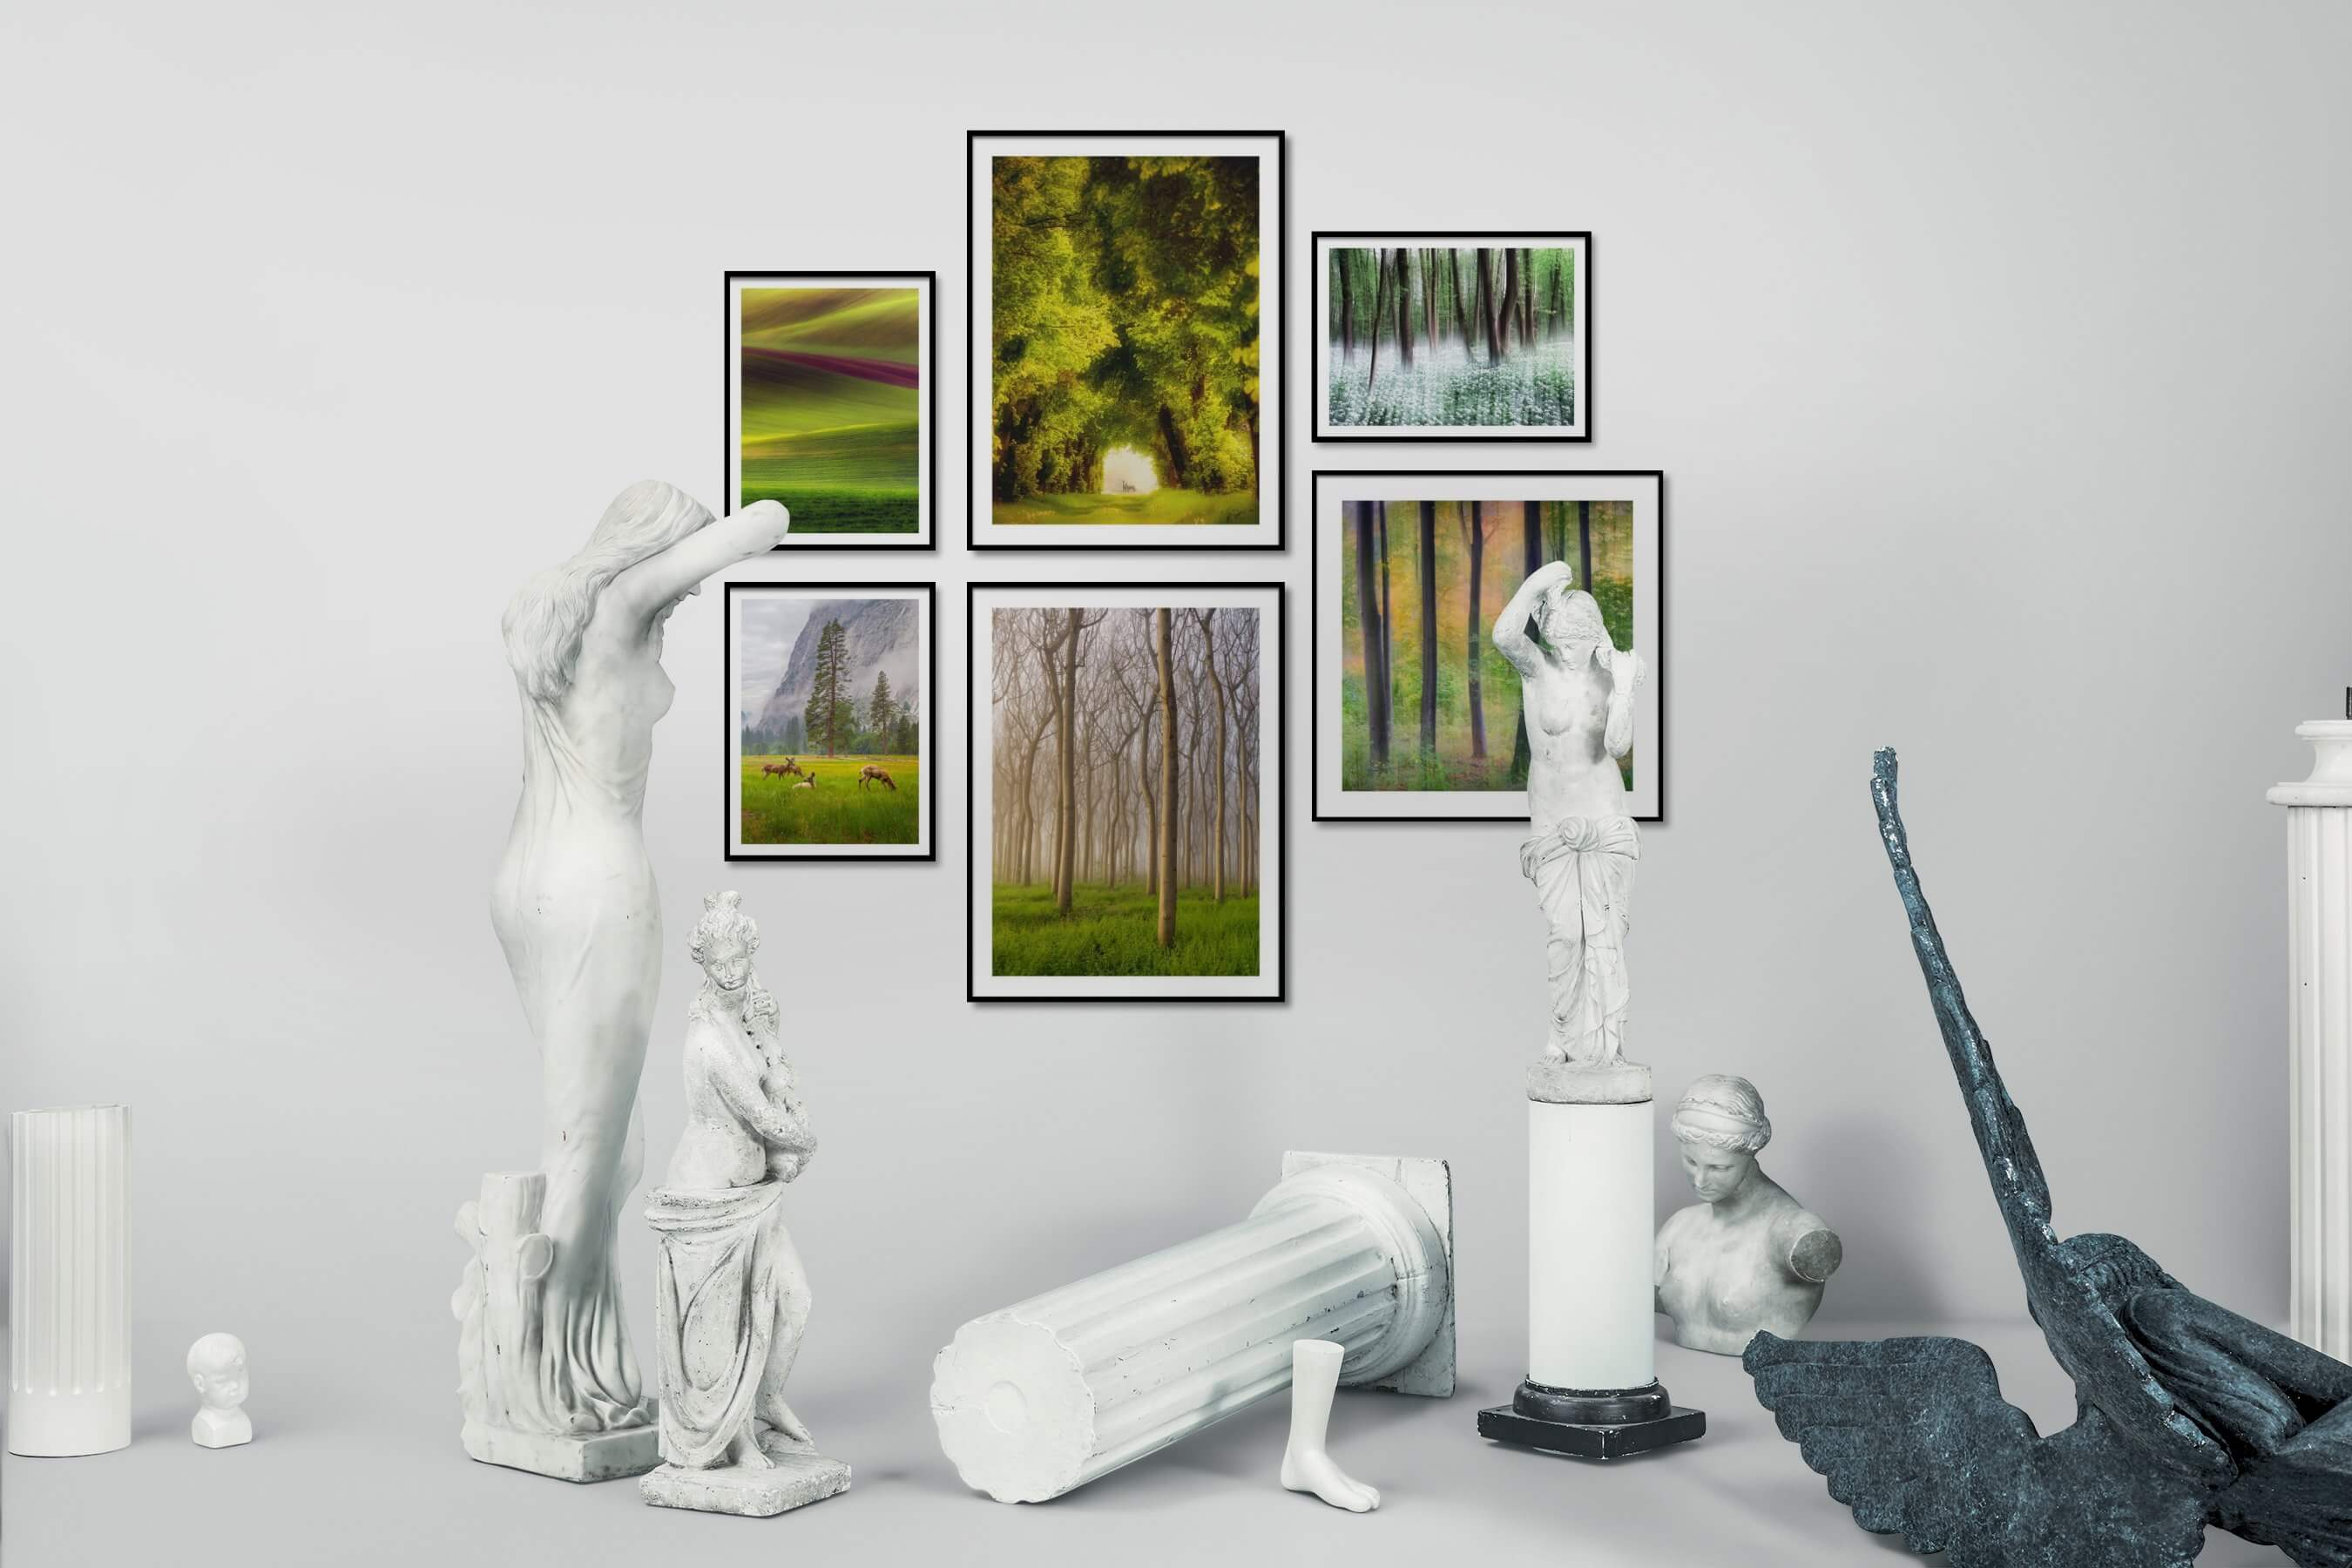 Gallery wall idea with six framed pictures arranged on a wall depicting For the Minimalist, Country Life, Nature, and Animals